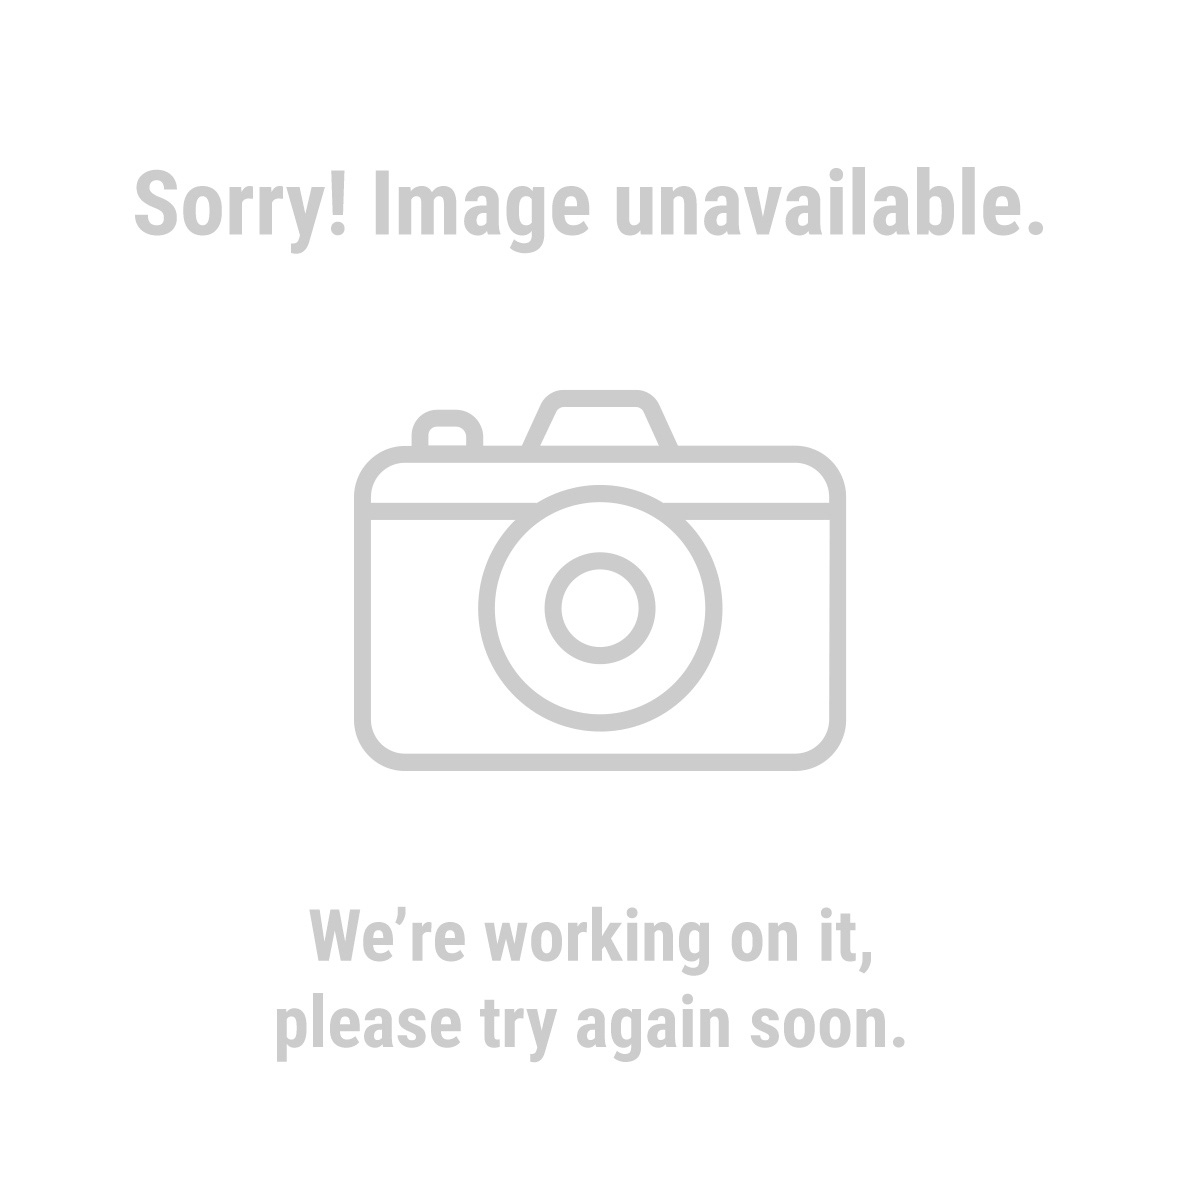 Cen-Tech 95069 70 Lb/32 Kg Digital Postal Scale